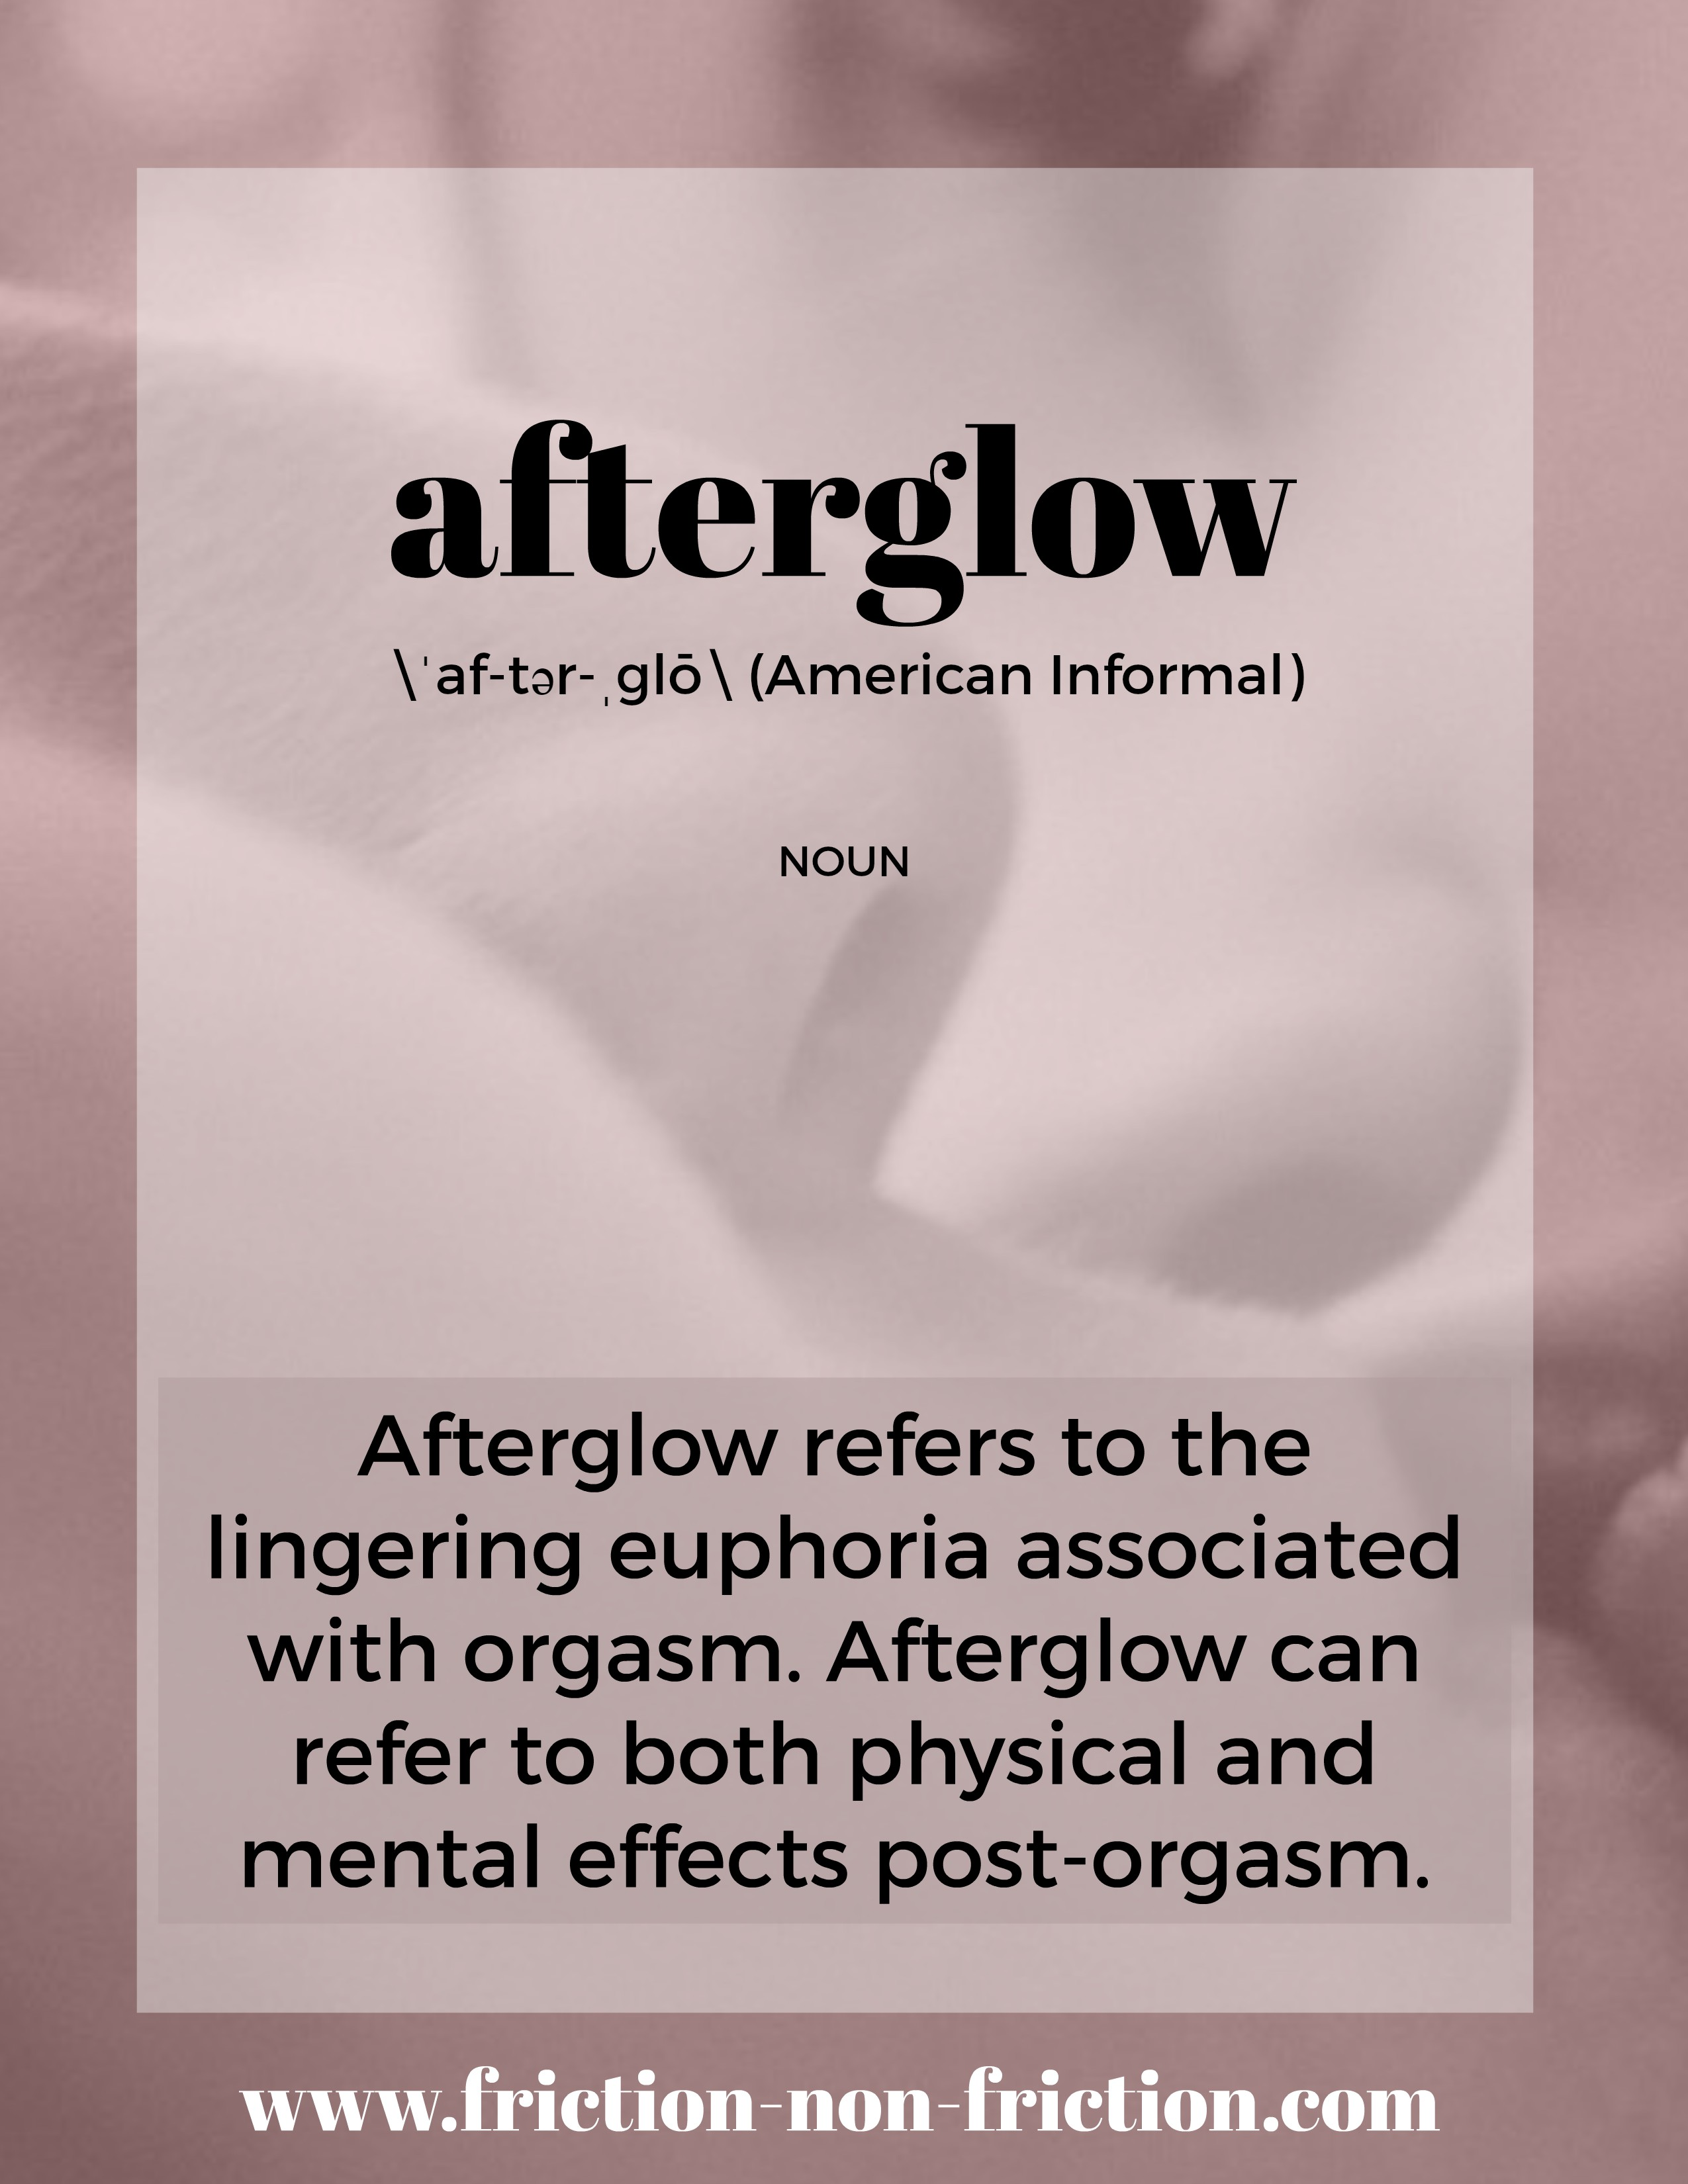 Afterglow -- another great FRICTIONARY definition from Friction|non|Friction